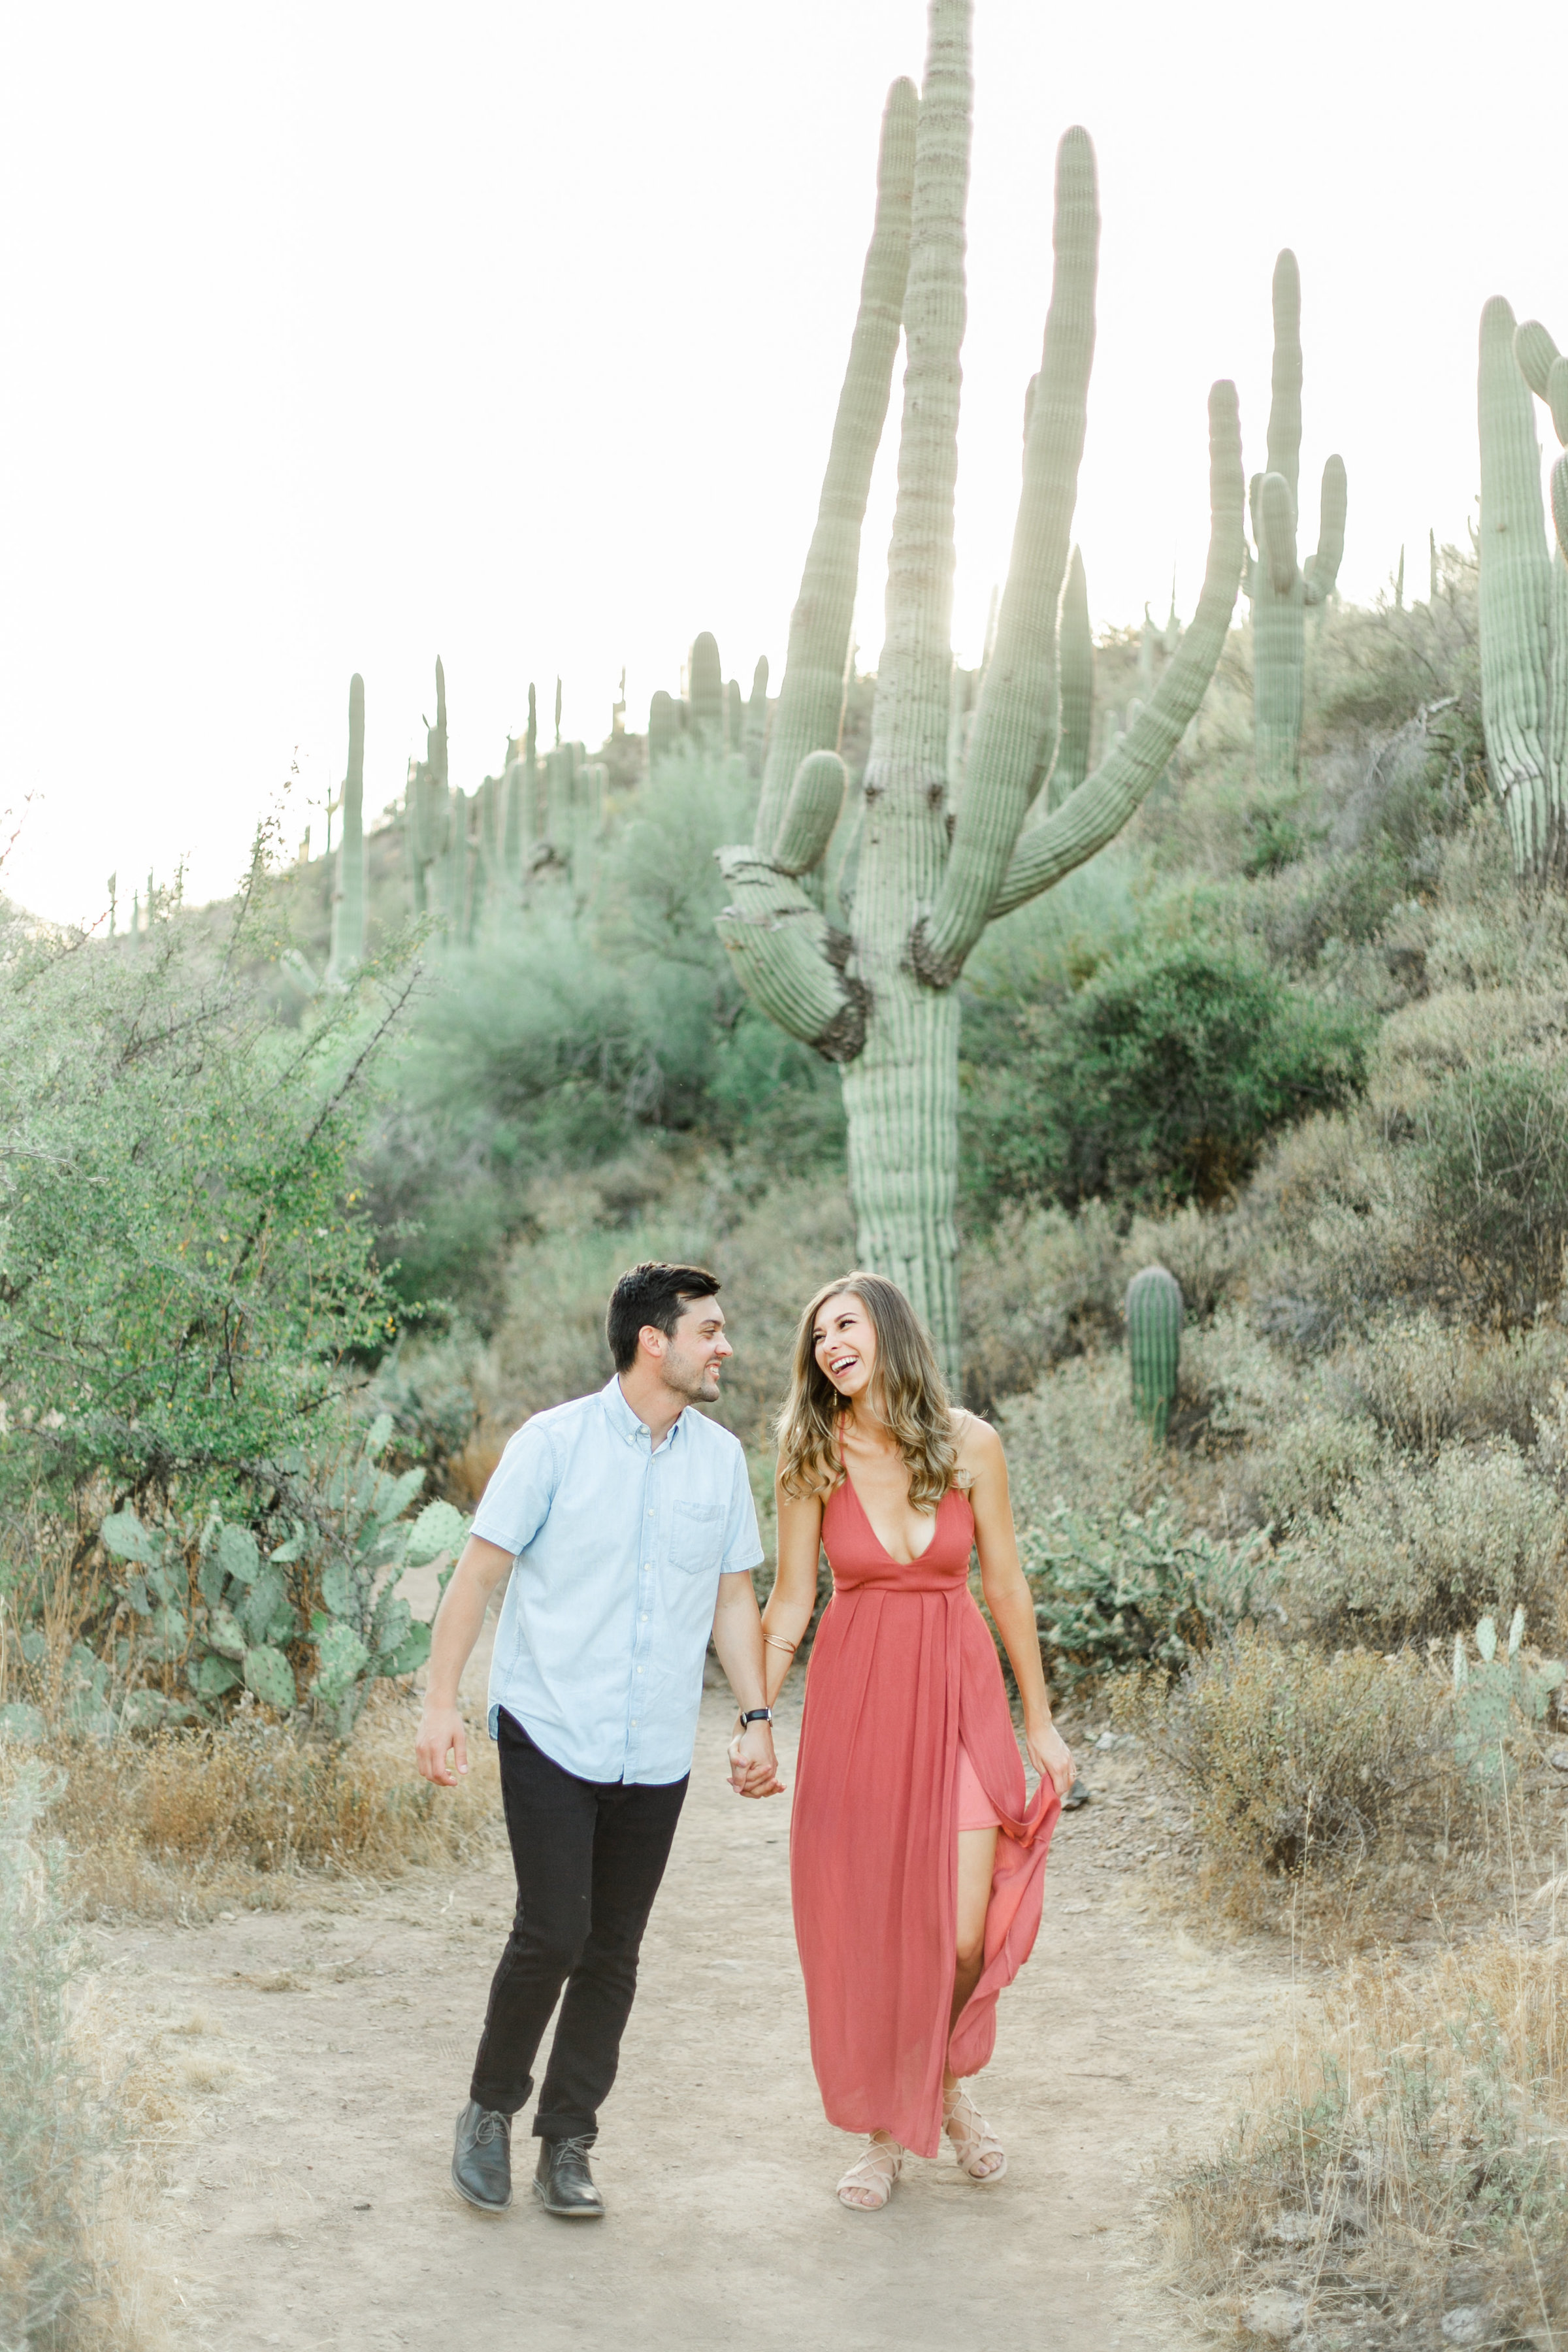 Karlie Colleen Photography - Arizona Desert Engagement - Brynne & Josh -128